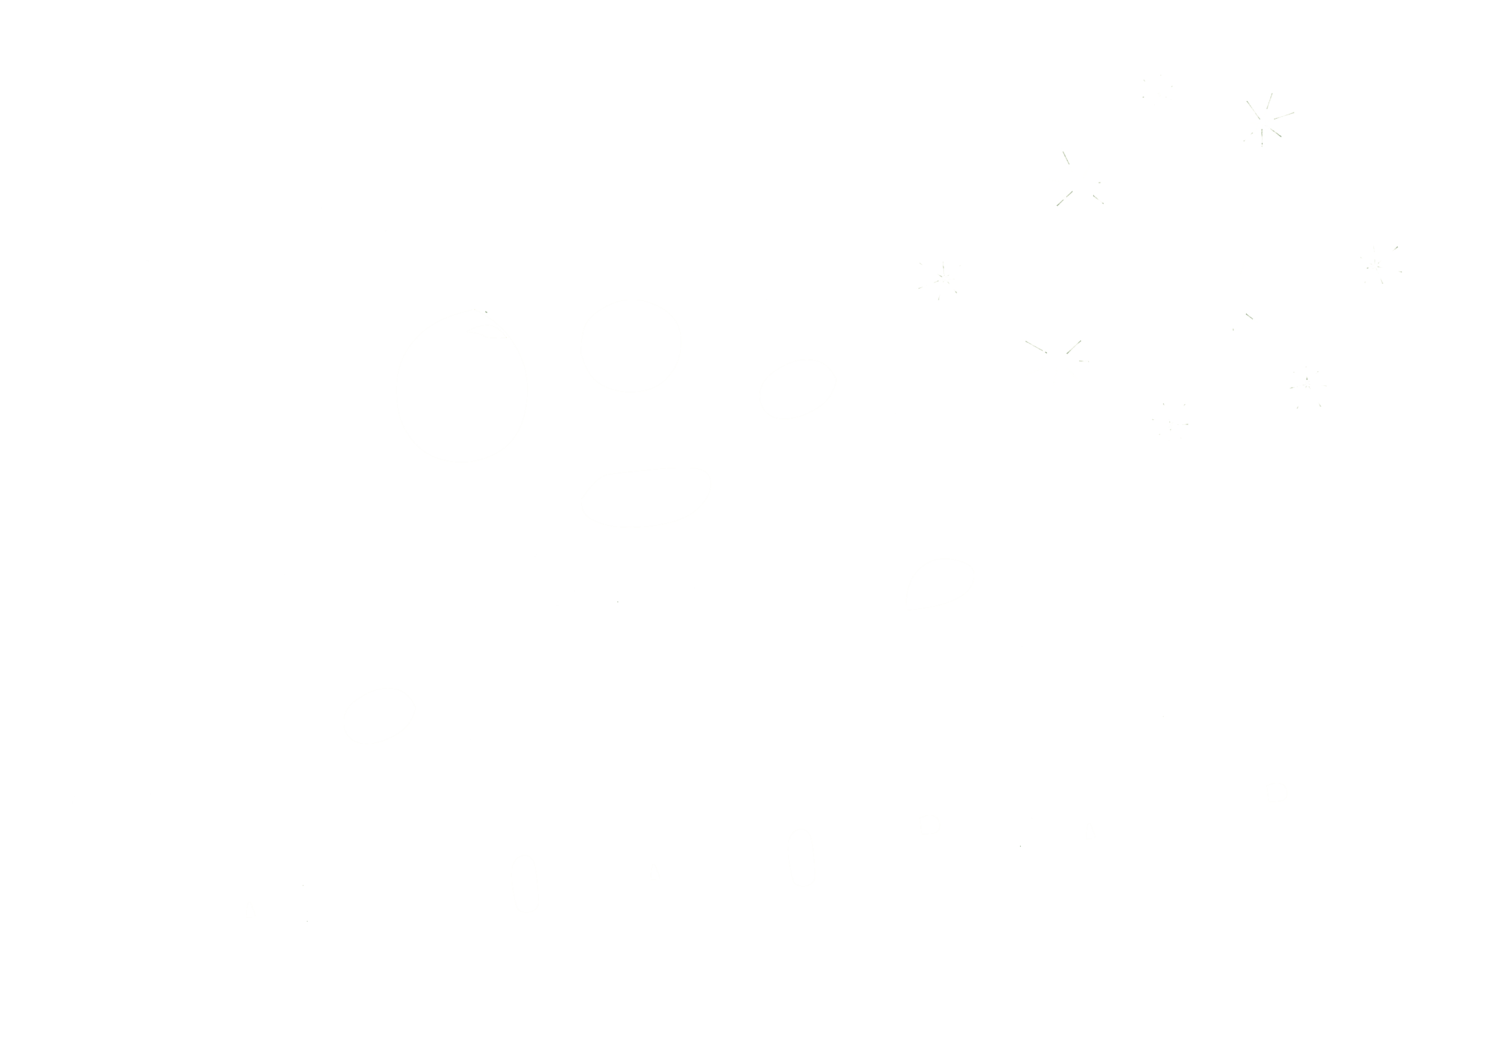 Gorgeous Yoga Nature Sheffield  Yoga And Nature With Hot Yoga Nature Sheffield With Beautiful Quesada Gardens Also Medium Garden Designs In Addition Gap Covent Garden Opening Hours And Olive Garden Restaurant As Well As Hanging Garden Signs Additionally Escorts In Welwyn Garden City From Yoganaturesheffieldorguk With   Hot Yoga Nature Sheffield  Yoga And Nature With Beautiful Yoga Nature Sheffield And Gorgeous Quesada Gardens Also Medium Garden Designs In Addition Gap Covent Garden Opening Hours From Yoganaturesheffieldorguk